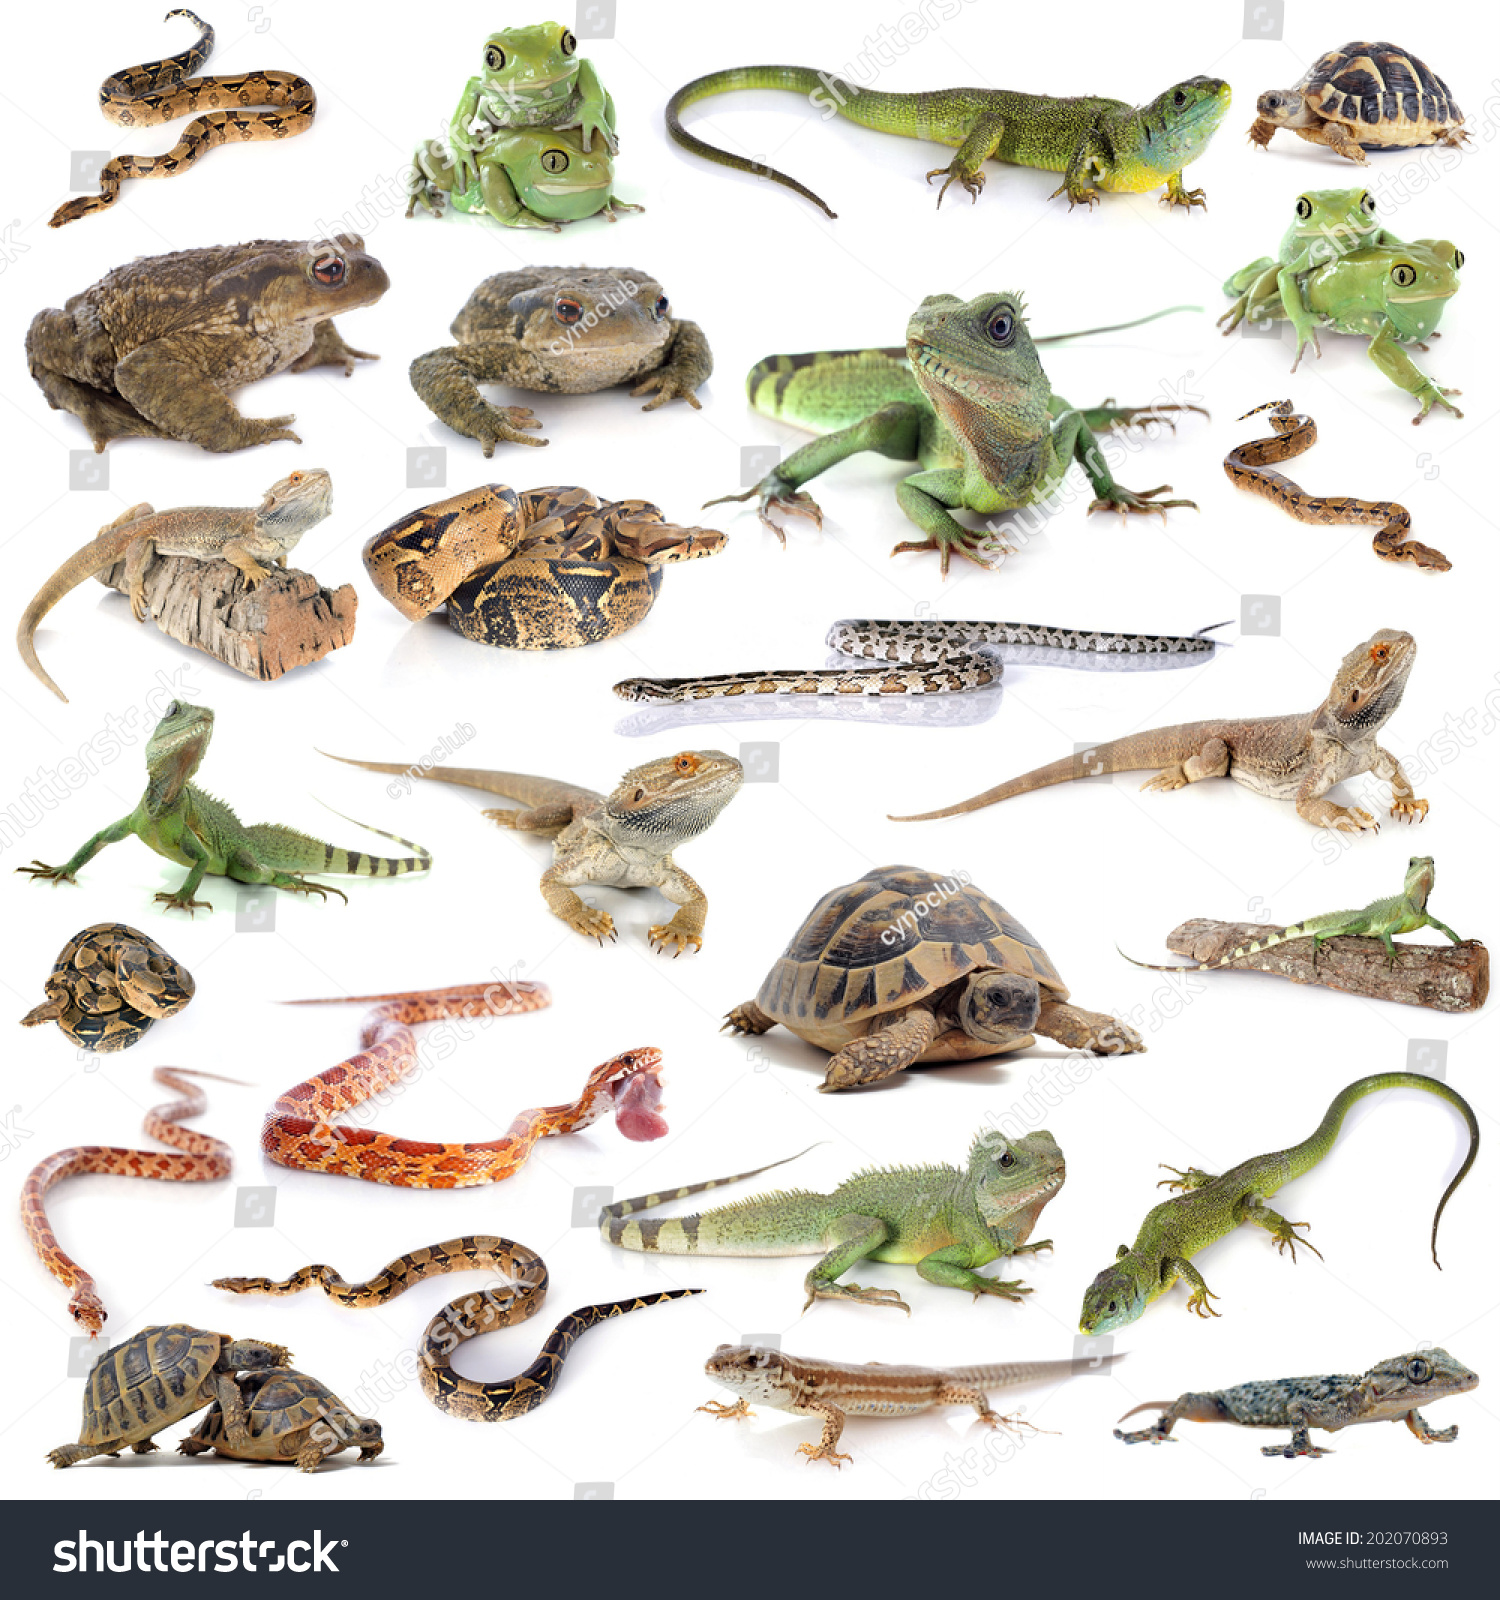 10 Types Of Amphibians Pictures to Pin on Pinterest ... 10 Examples Of Reptiles